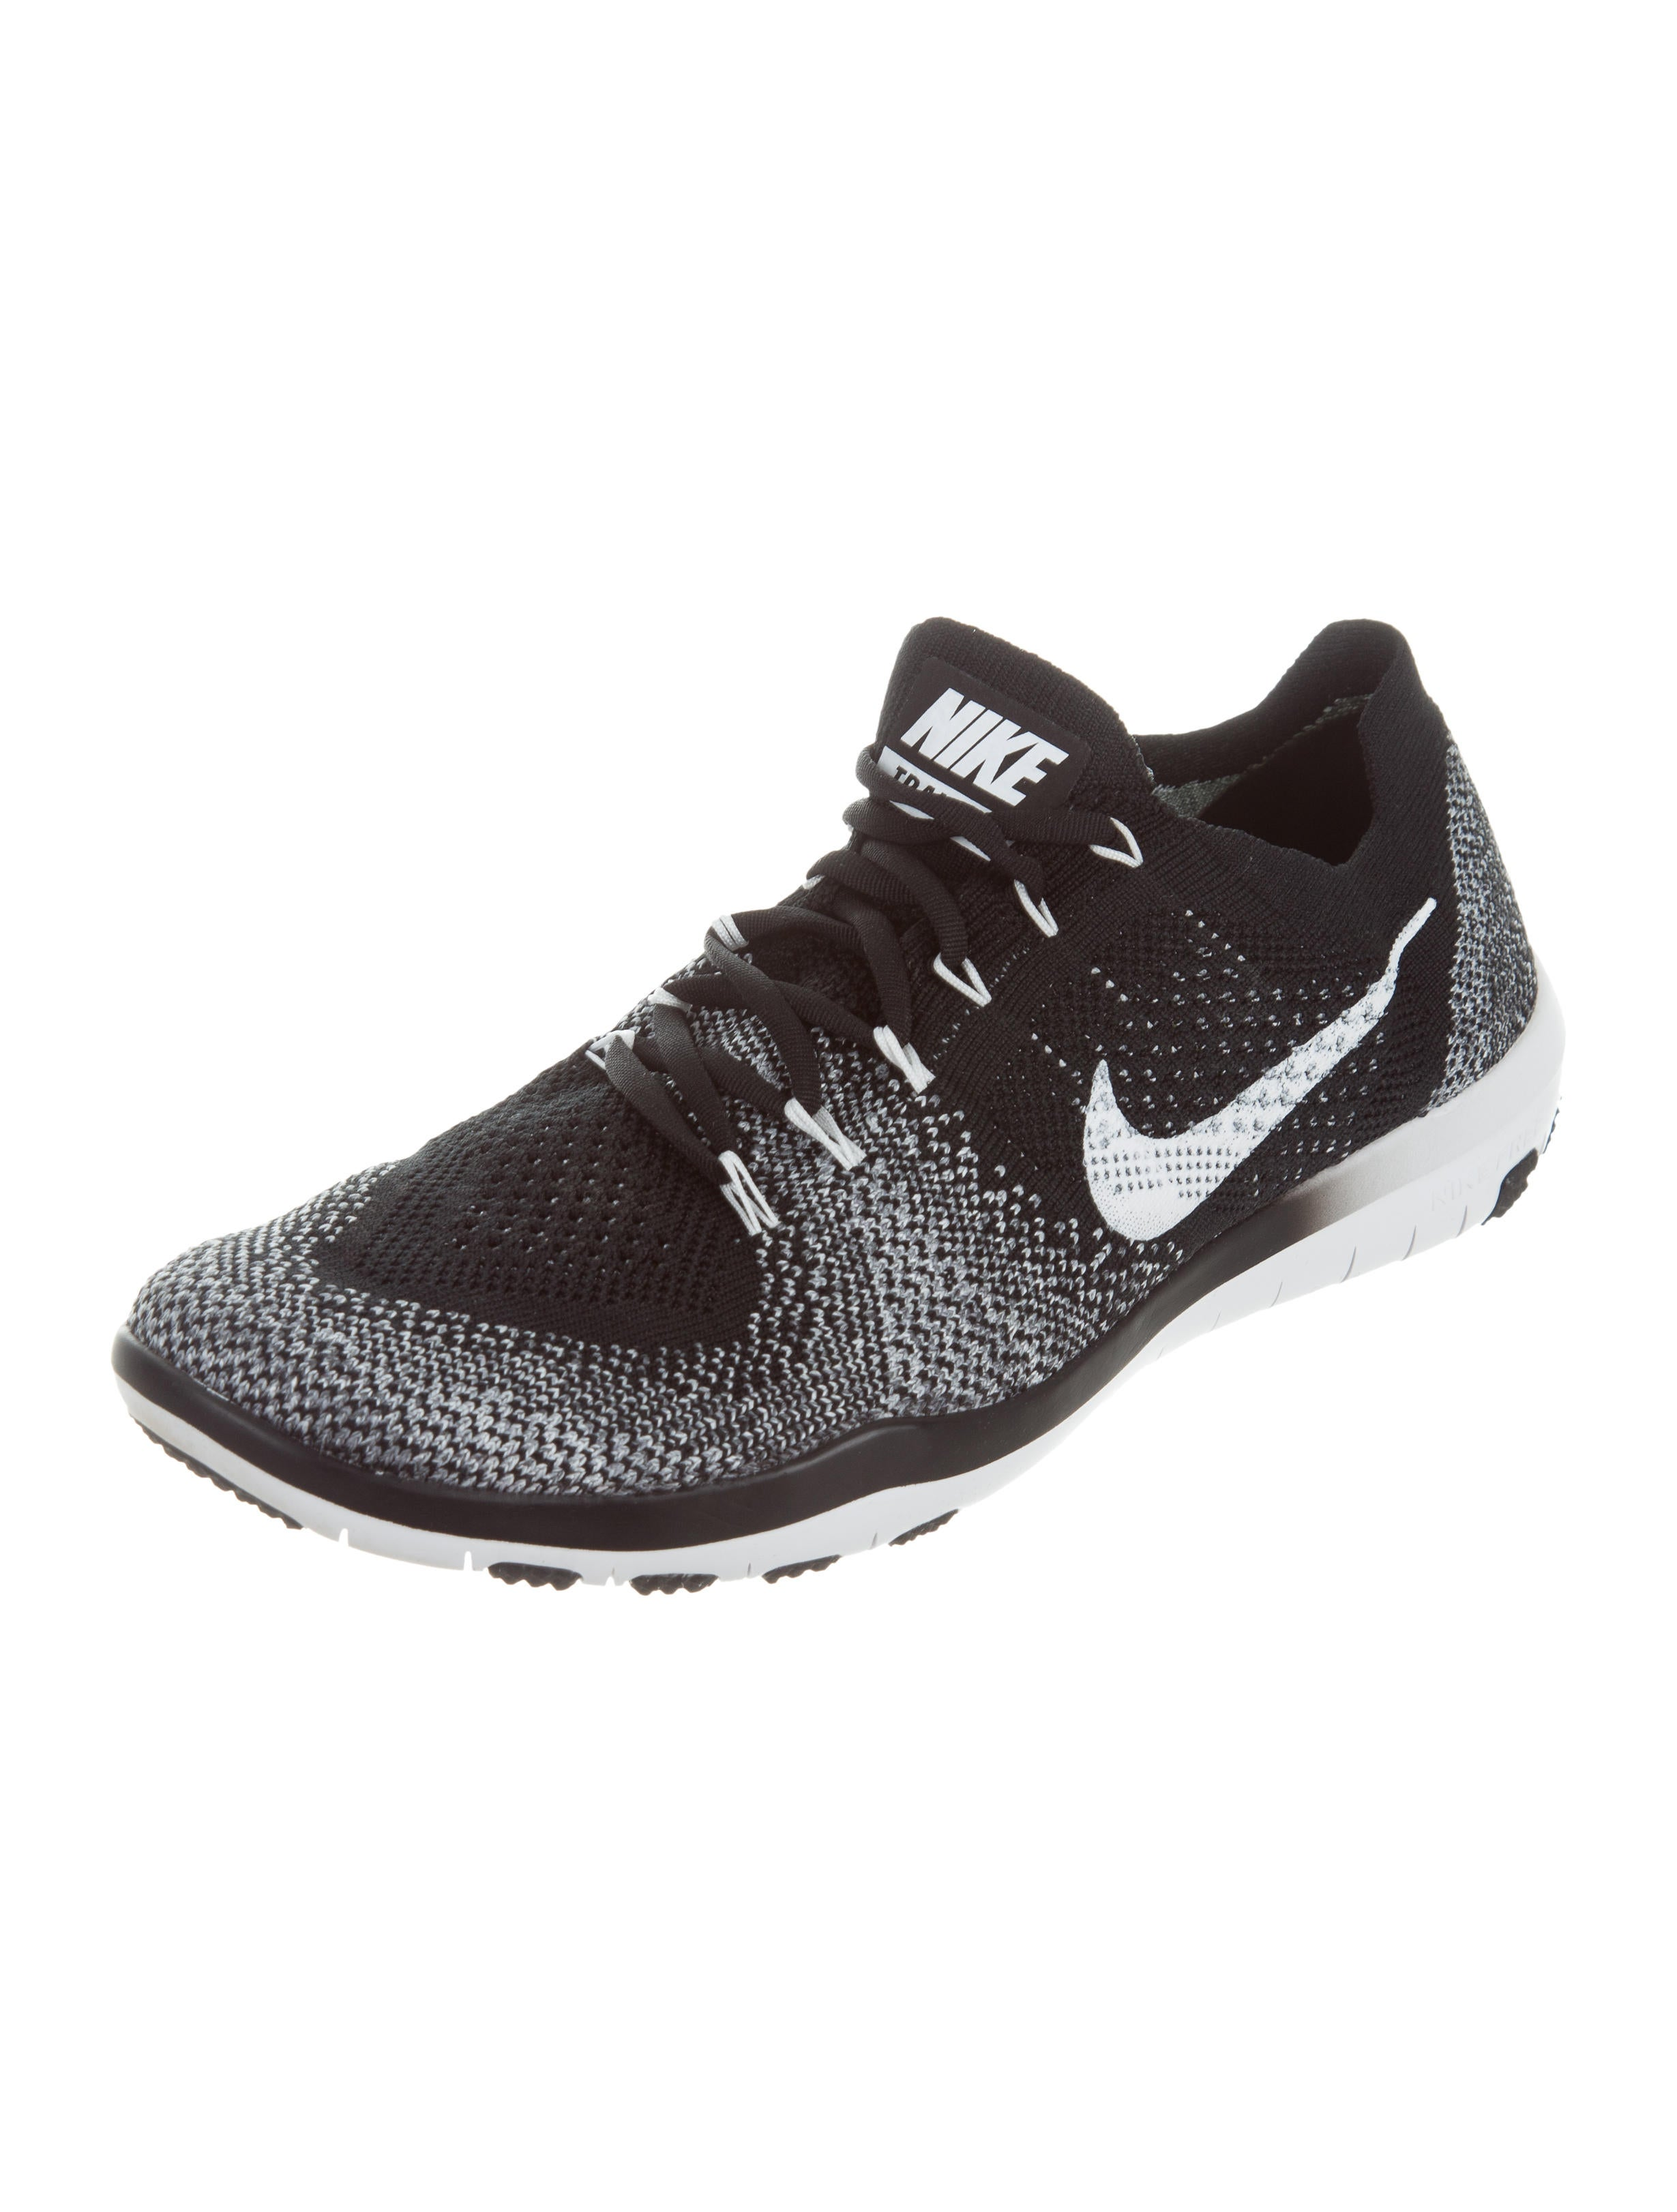 Nike Nike Training Low-Top Sneakers - Shoes - WU221285 | The RealReal